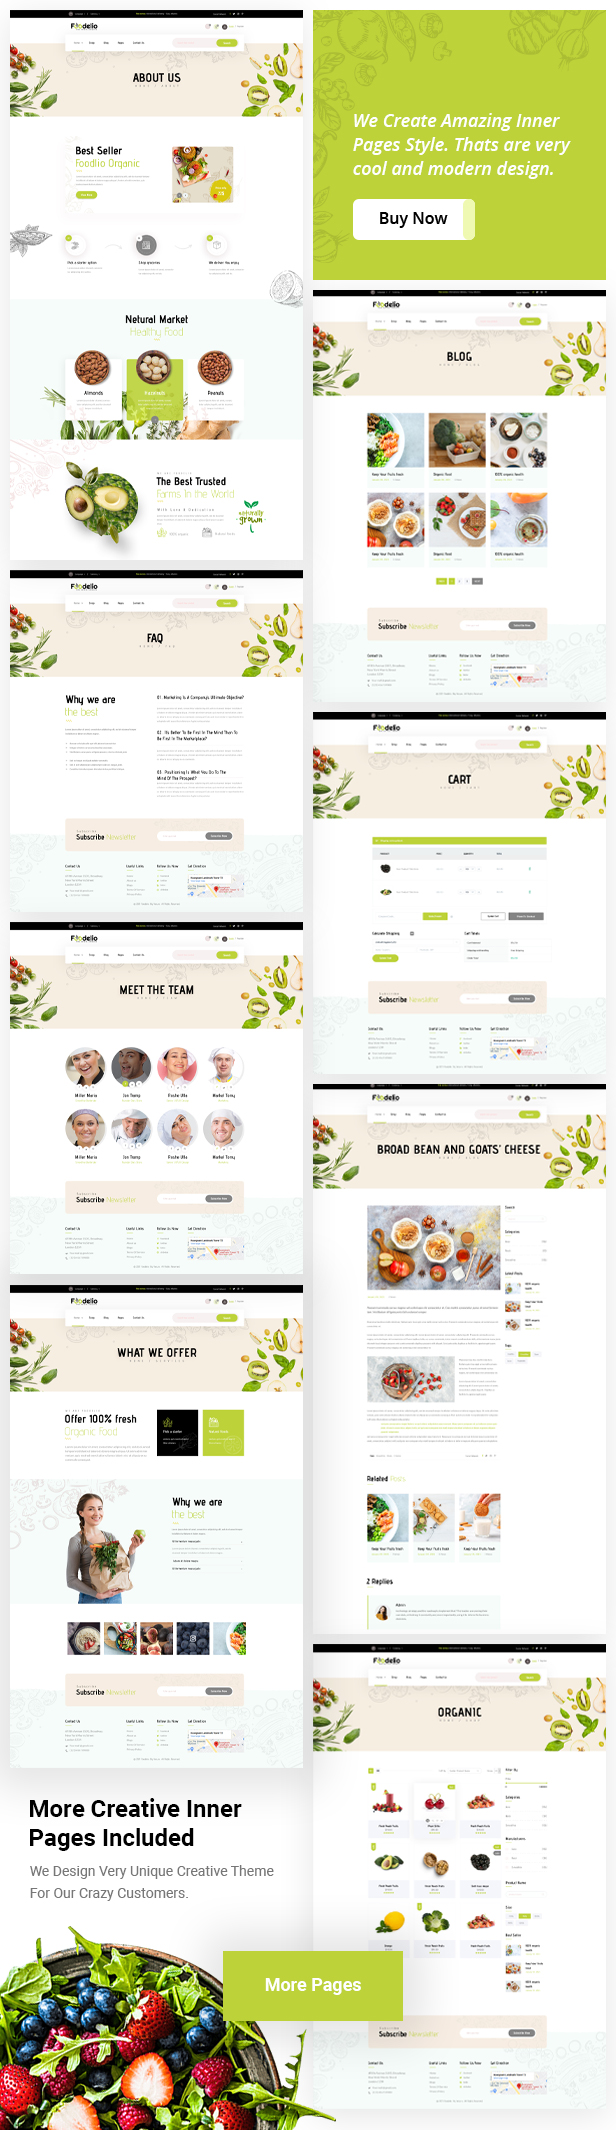 Foodelio-Pages-List